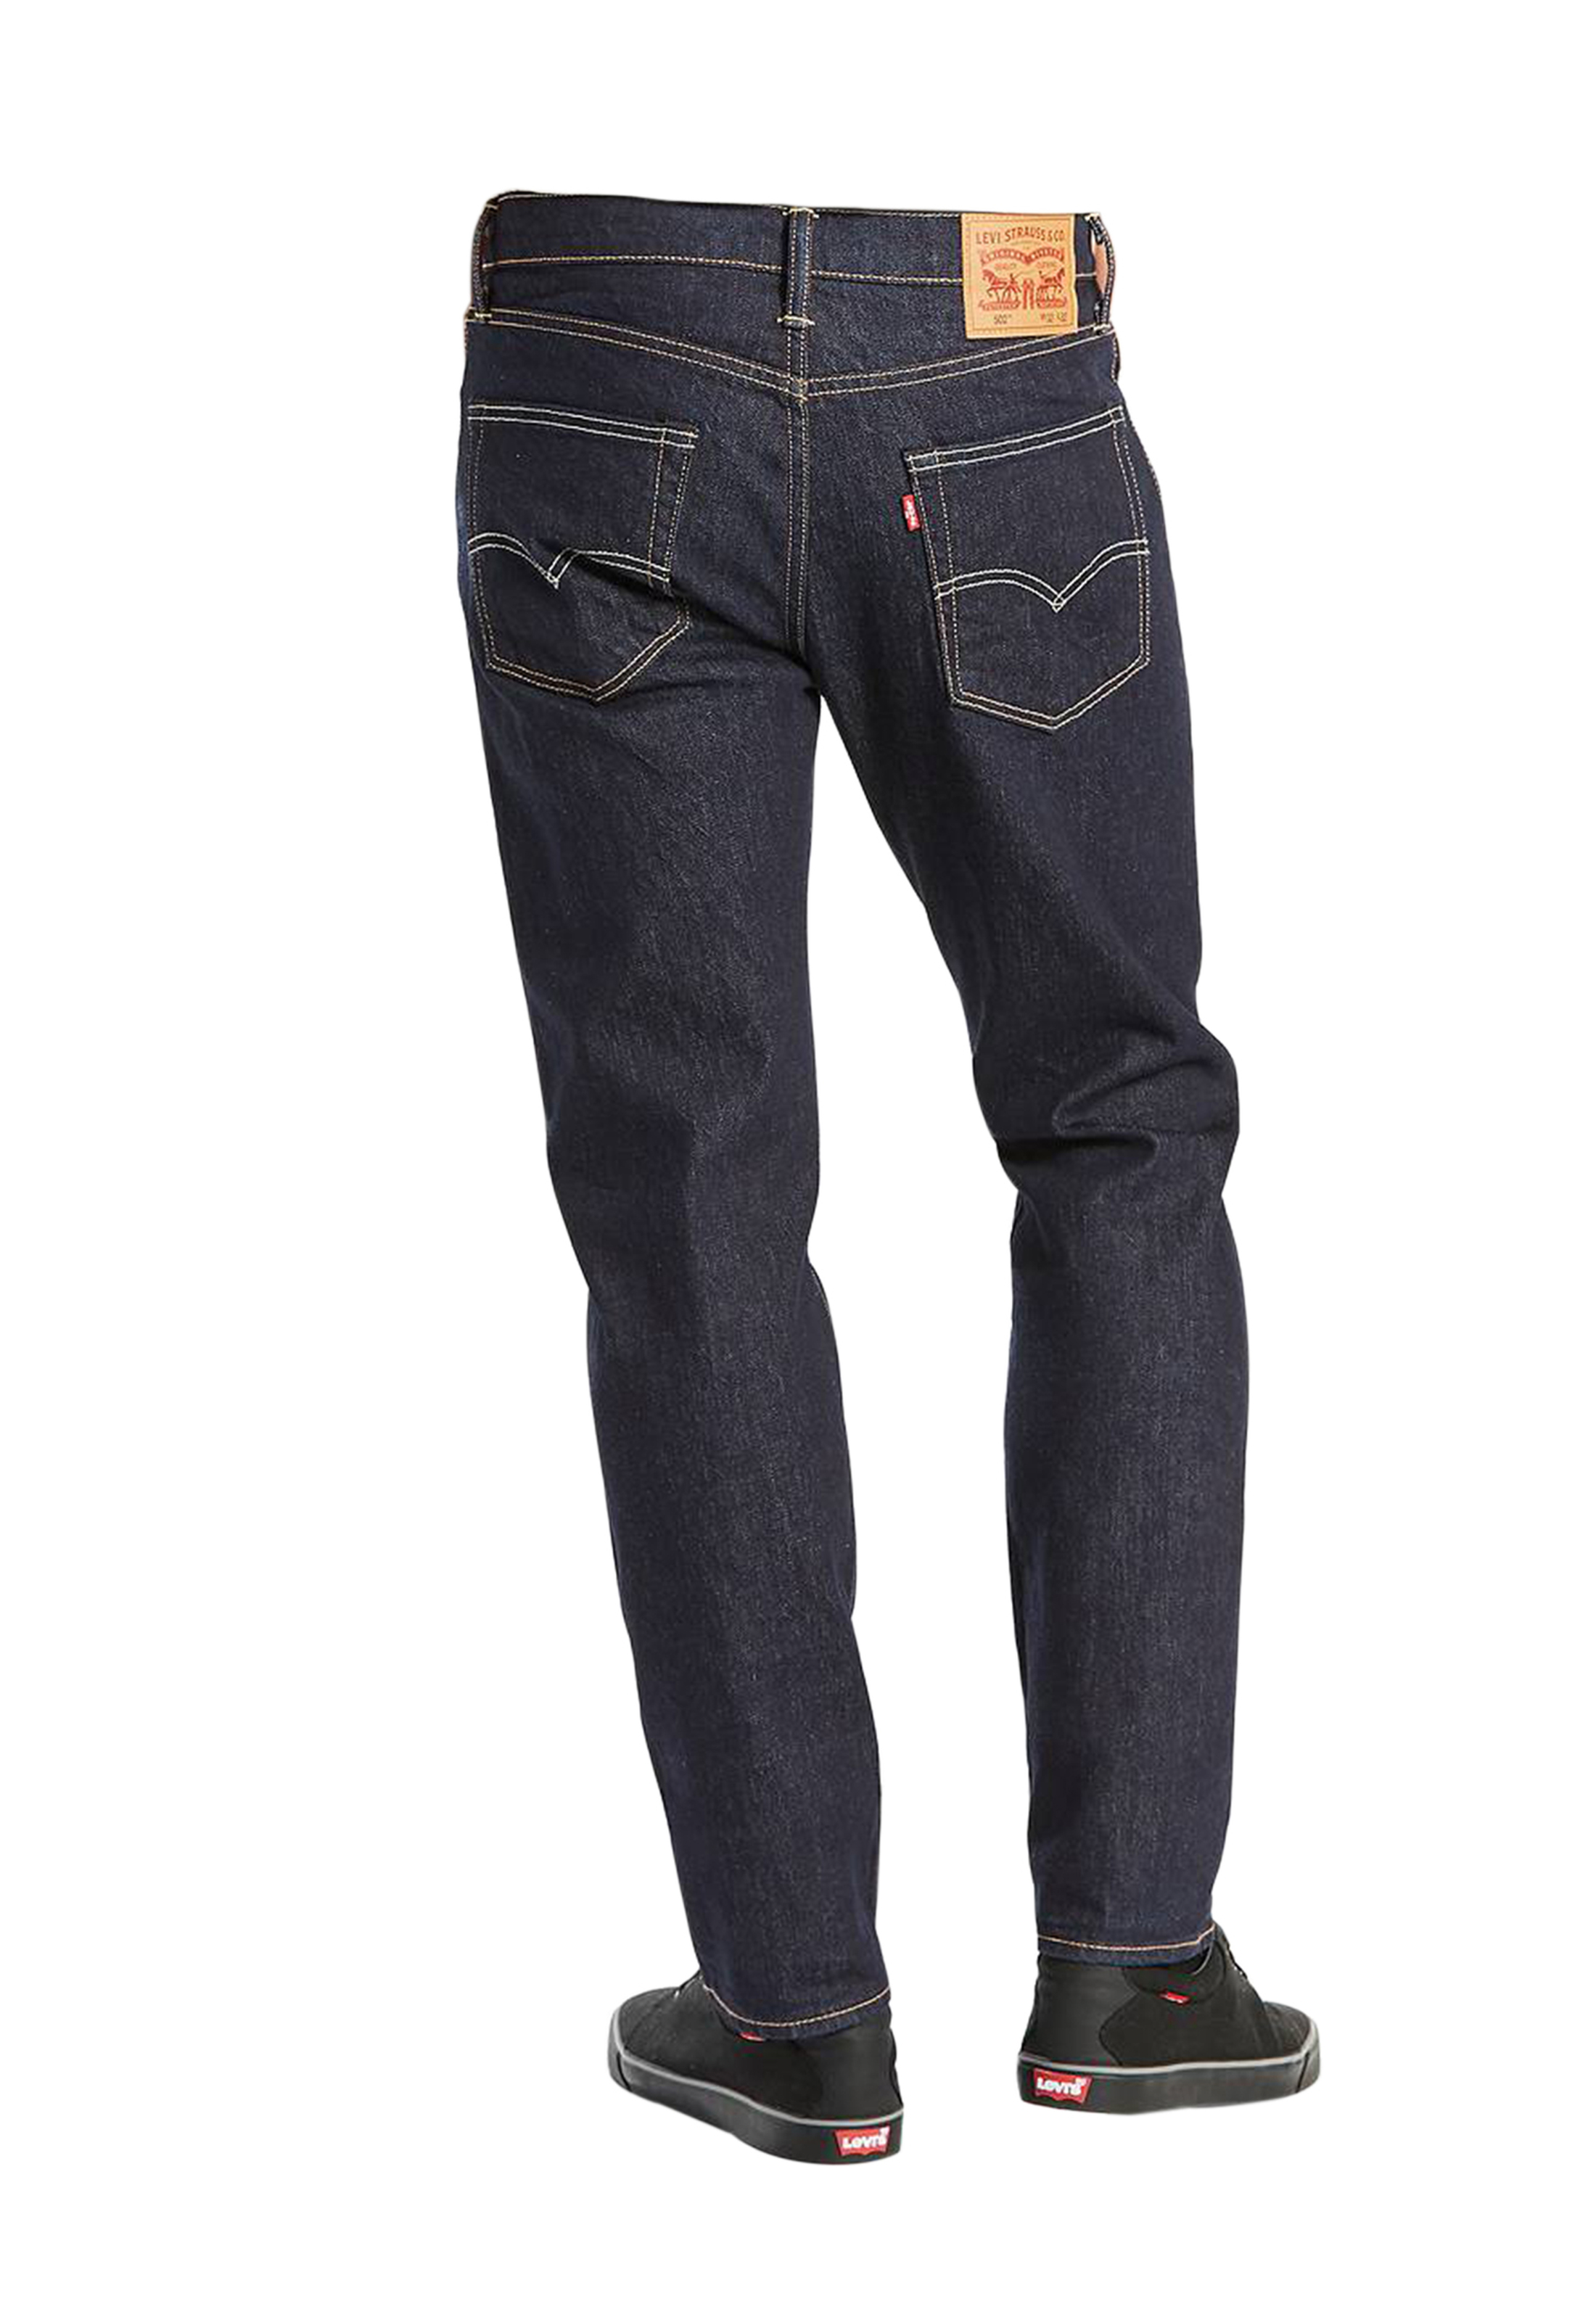 Levi's Jeans 502 Regular Taper foto 2